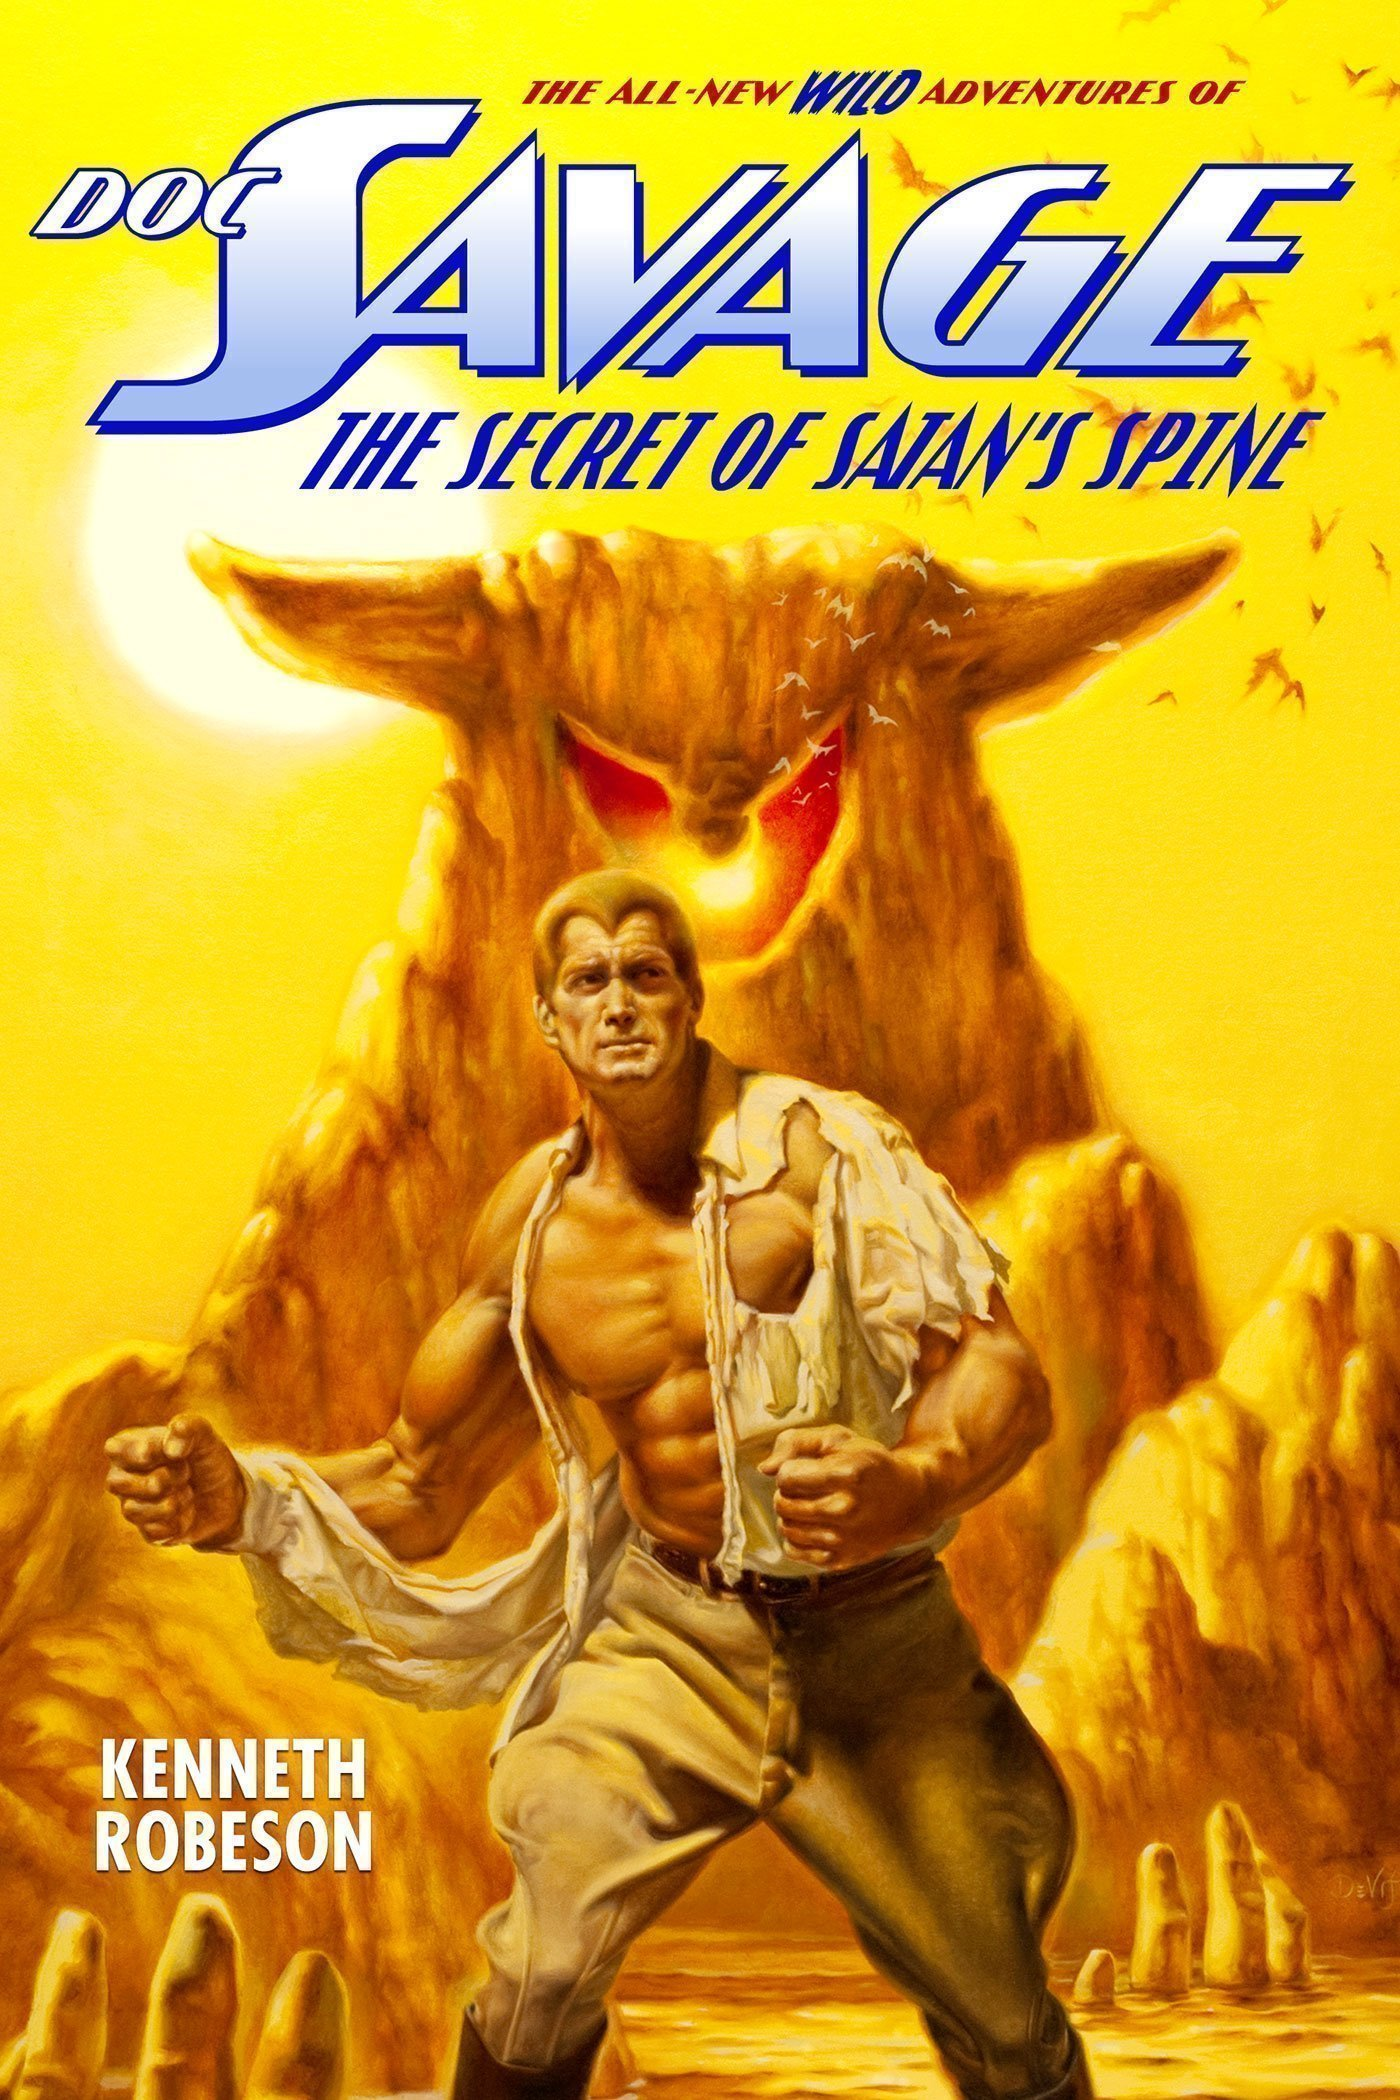 Doc Savage: The Secret of Satan's Spine